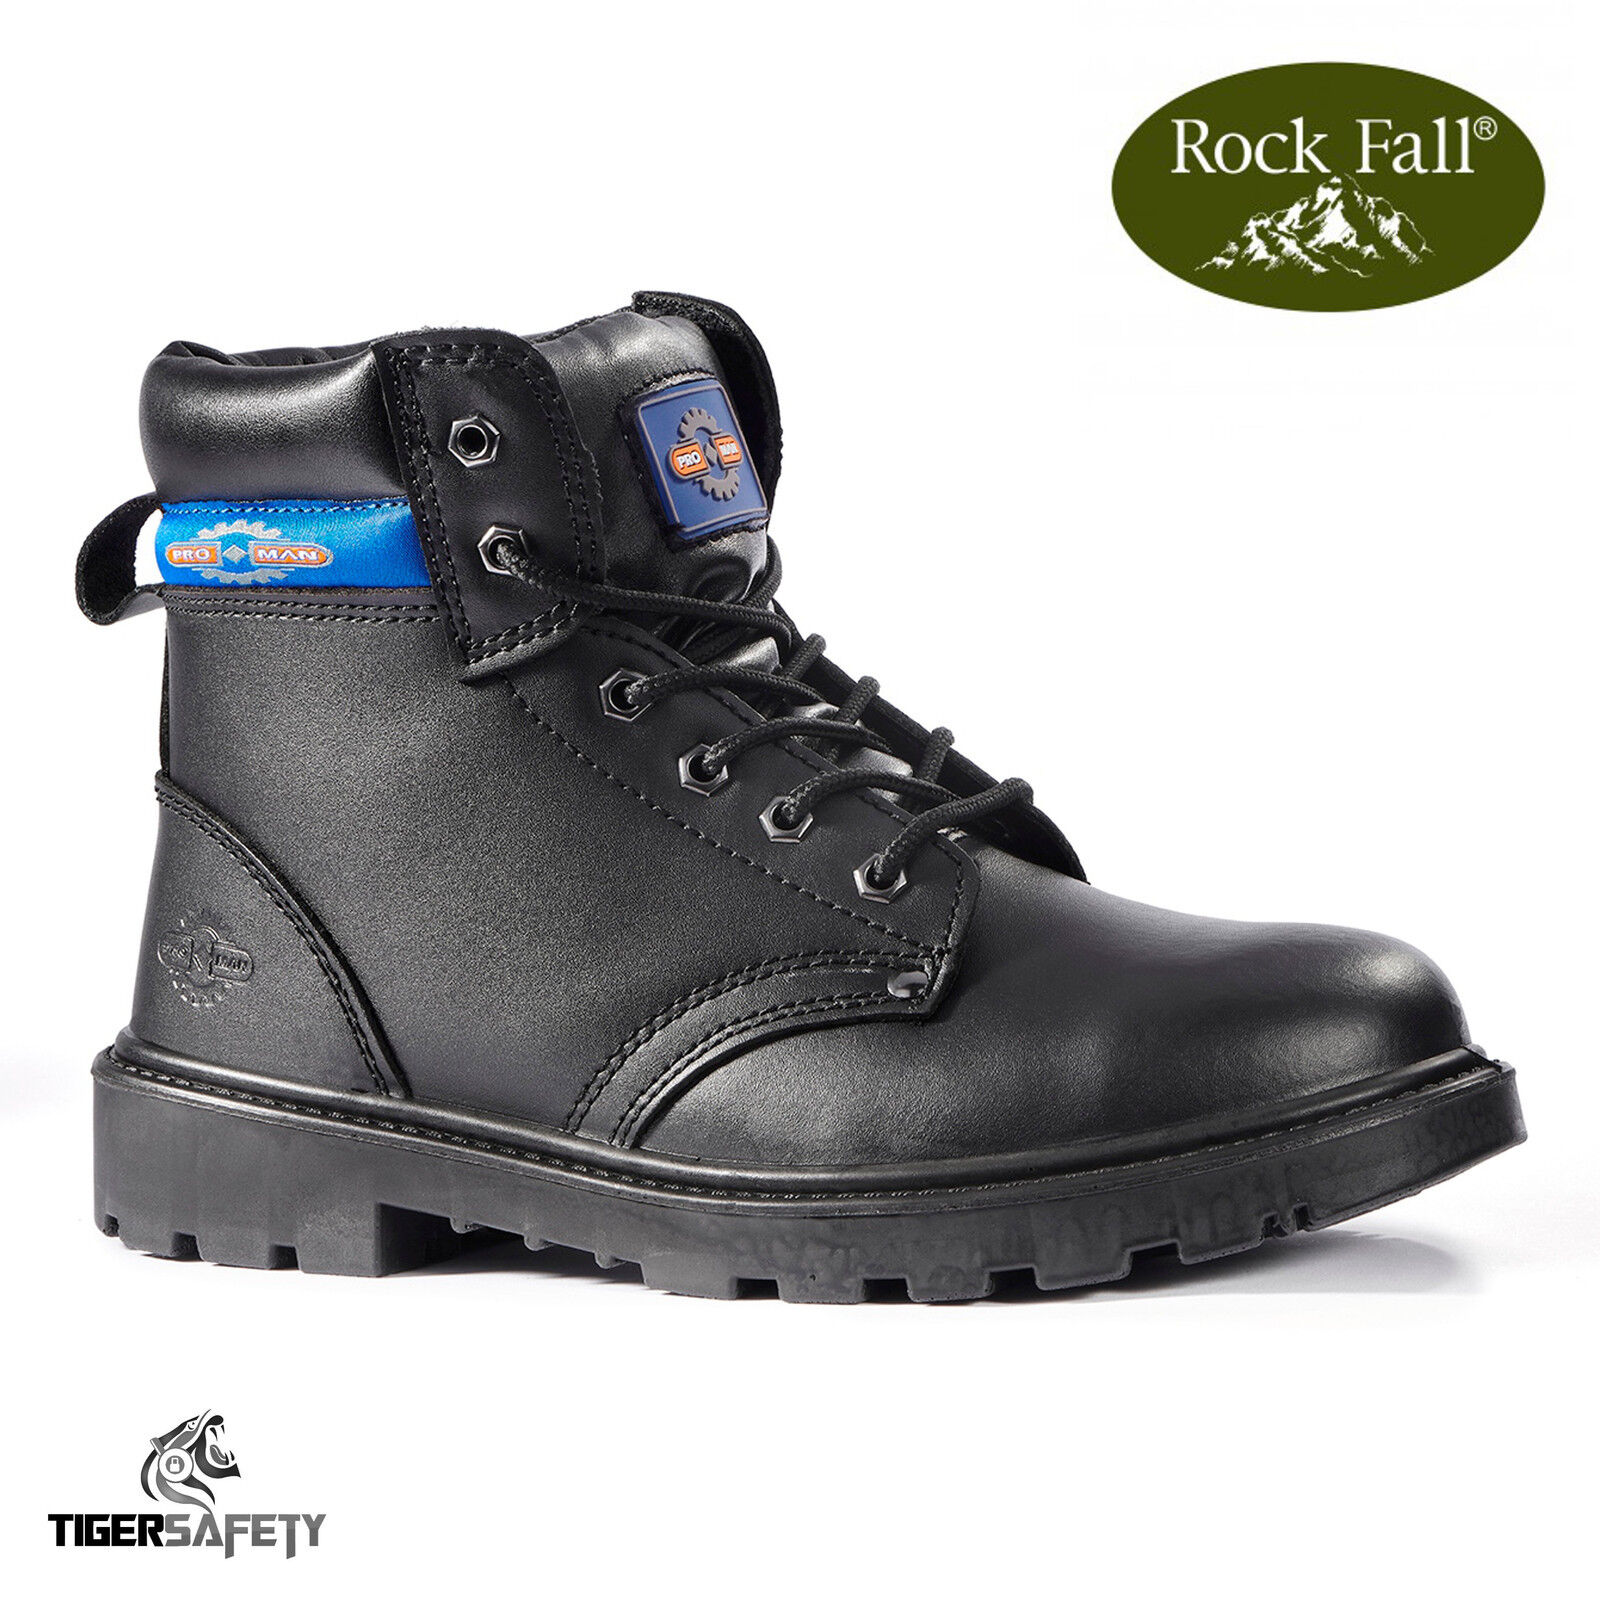 Rock Fall Pro Man Jackson S3 Black Leather Steel Toe Cap Safety Boots Work Boots